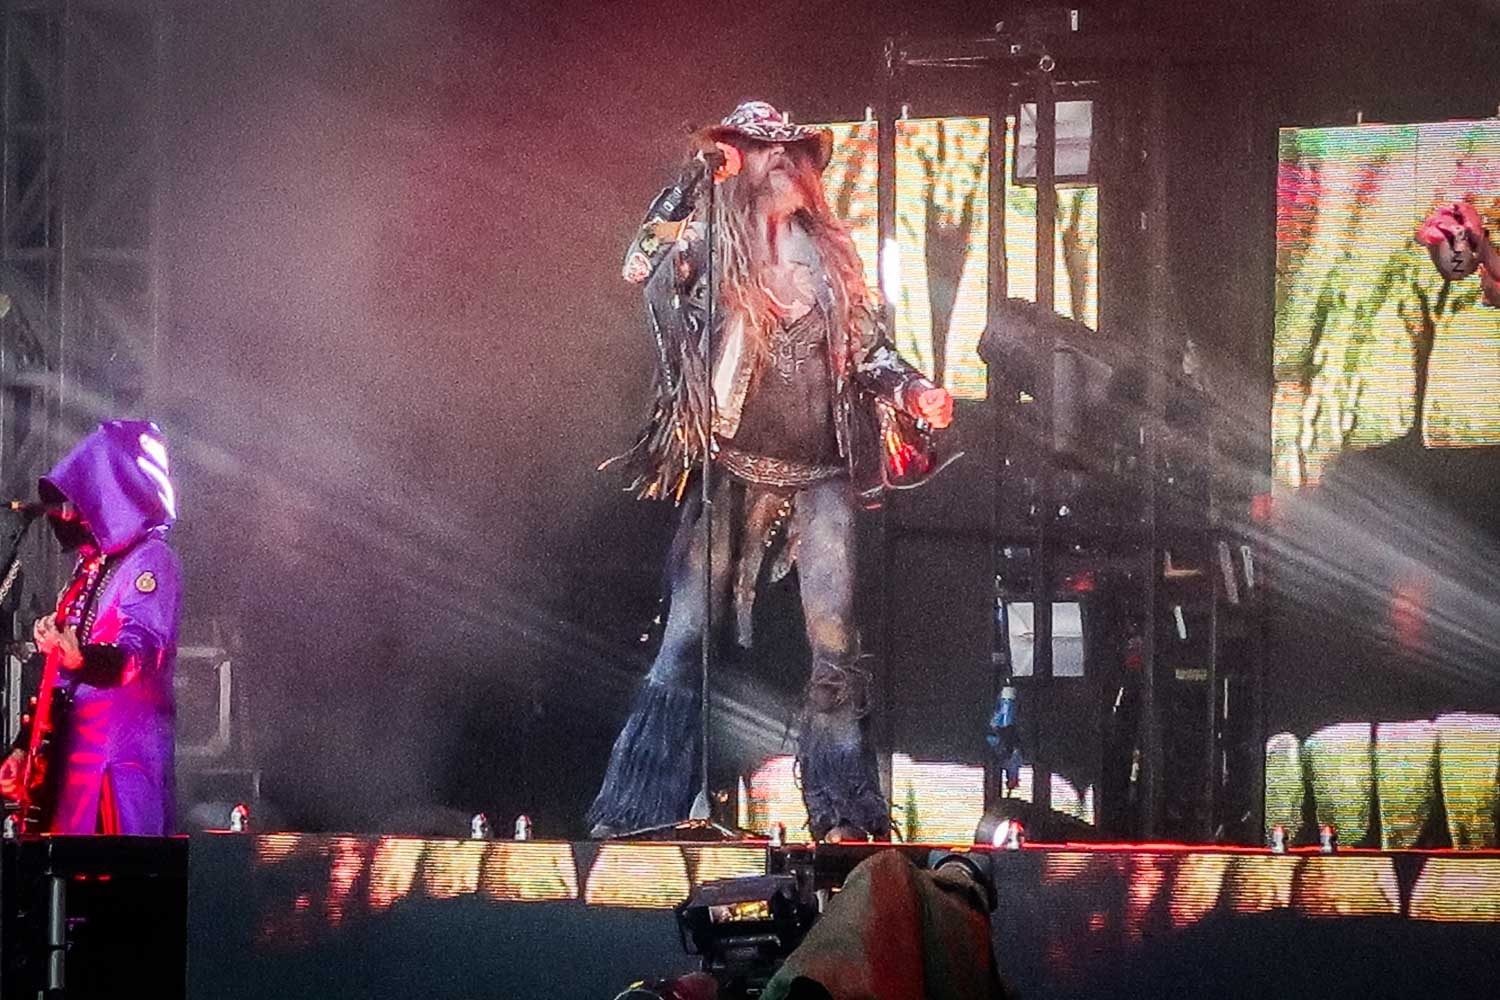 Rob Zombie on the Zippo Encore stage Download 2019